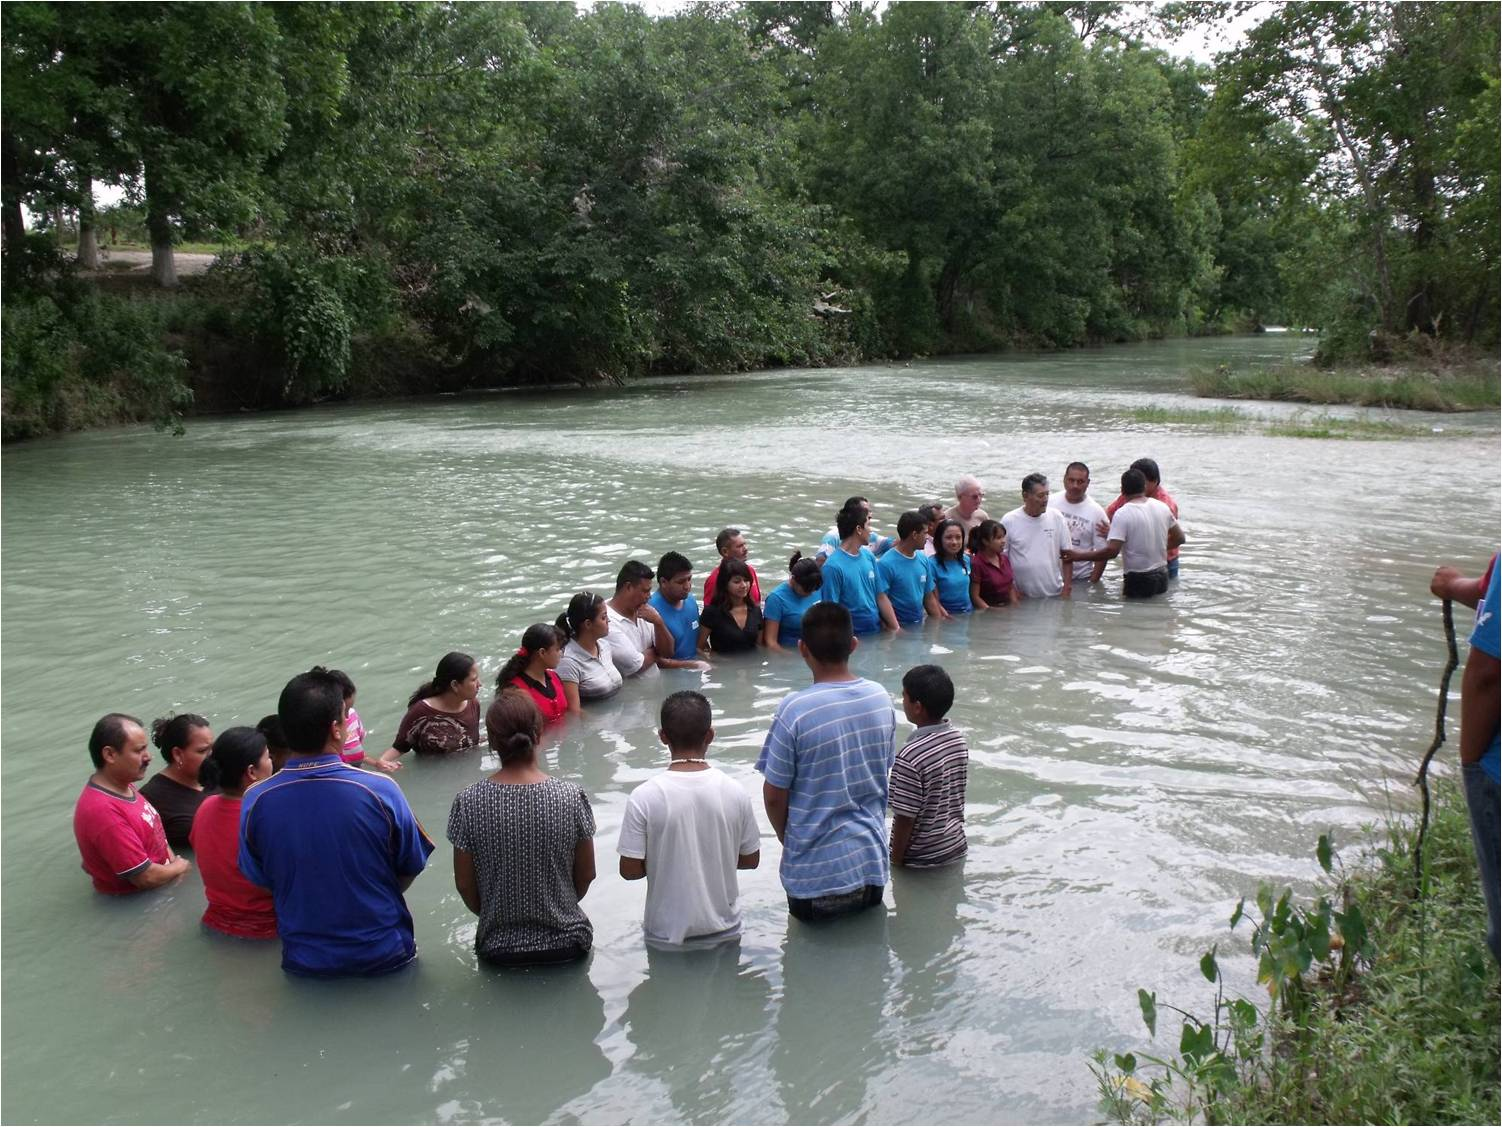 Baptism at Jimenez, Mexico